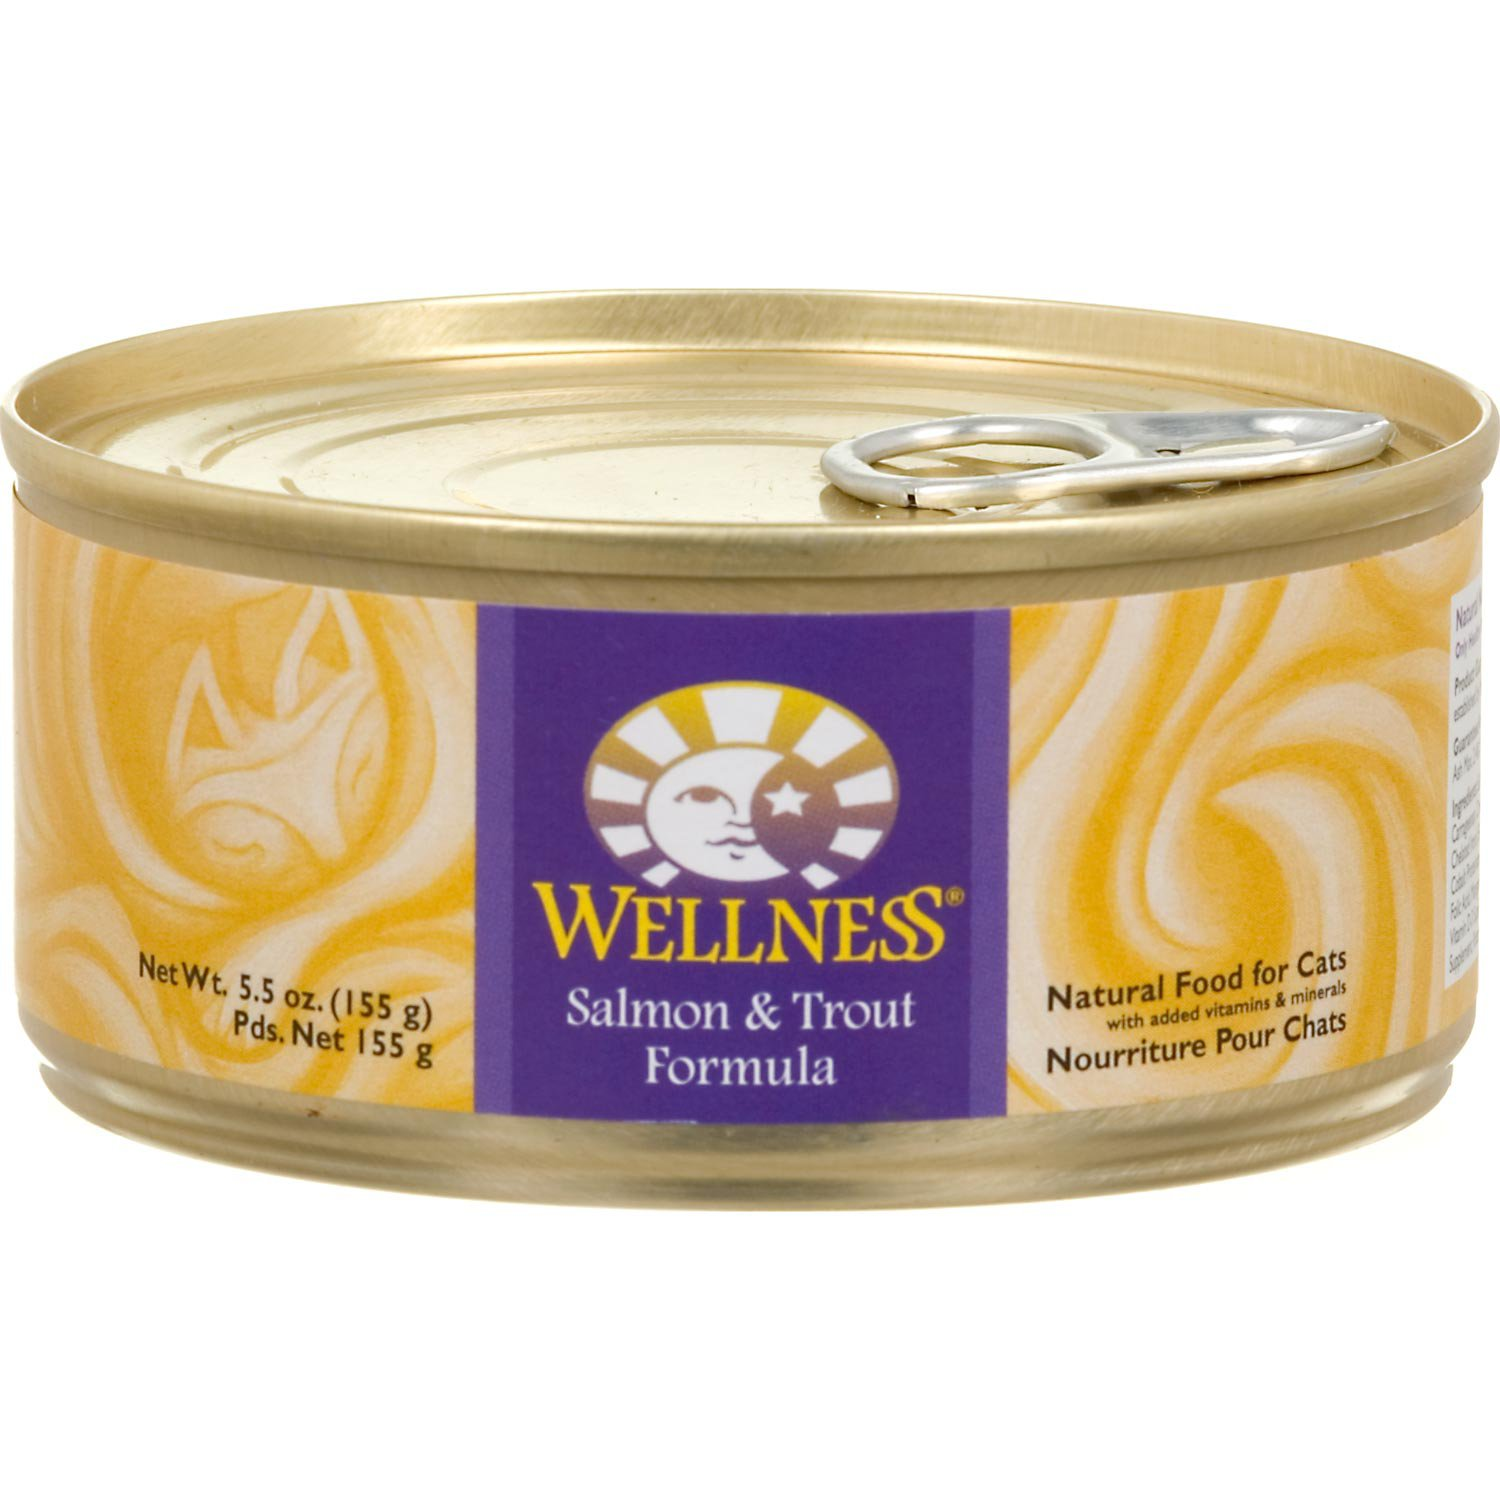 Wellness Adult Canned Cat Food, Salmon & Trout